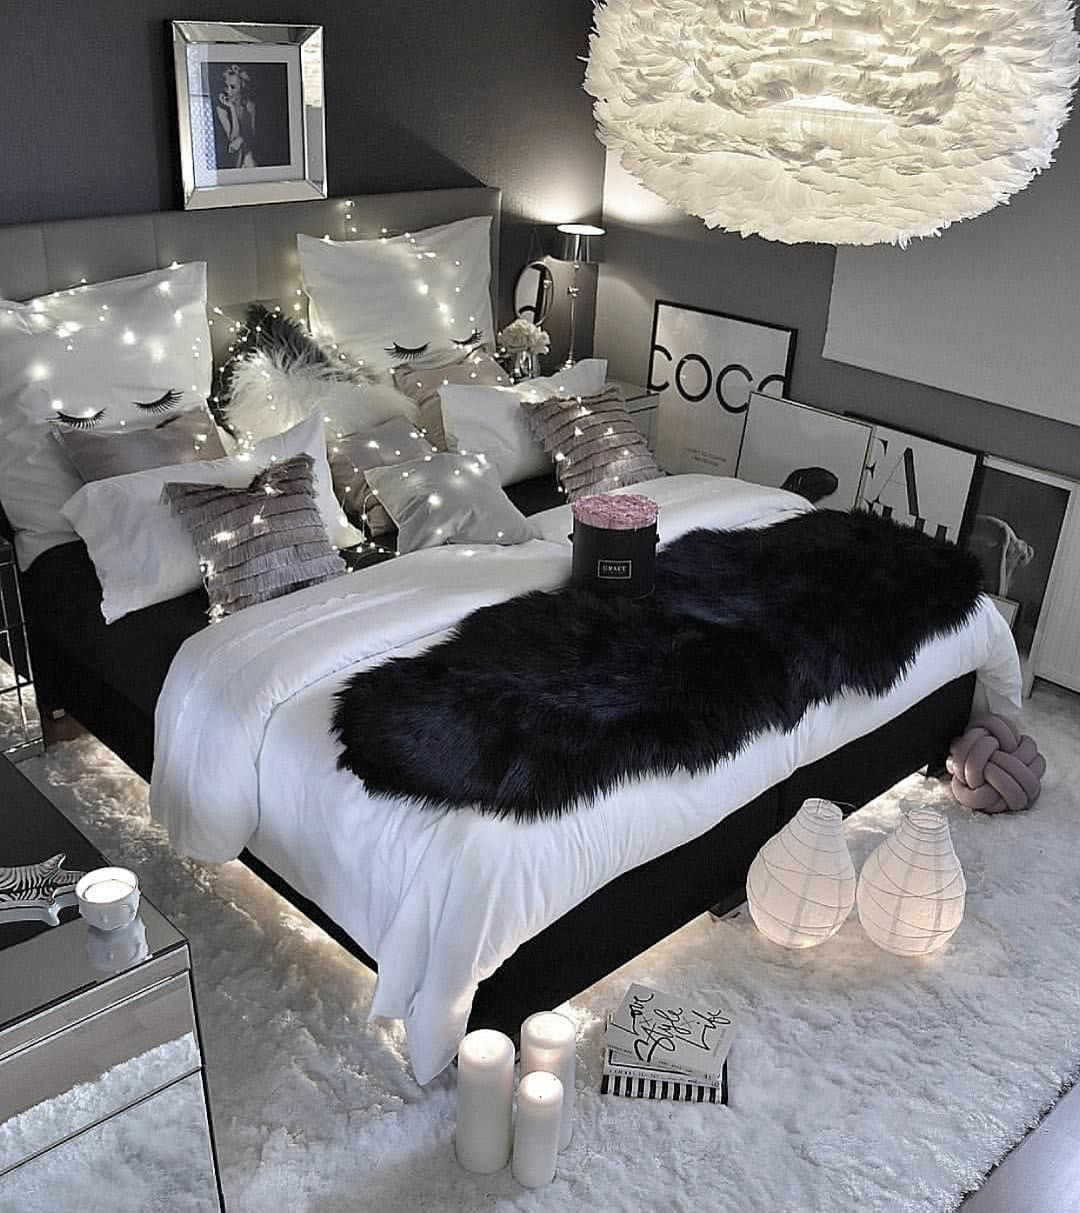 Dream rooms 6297 Likes 35 Comments